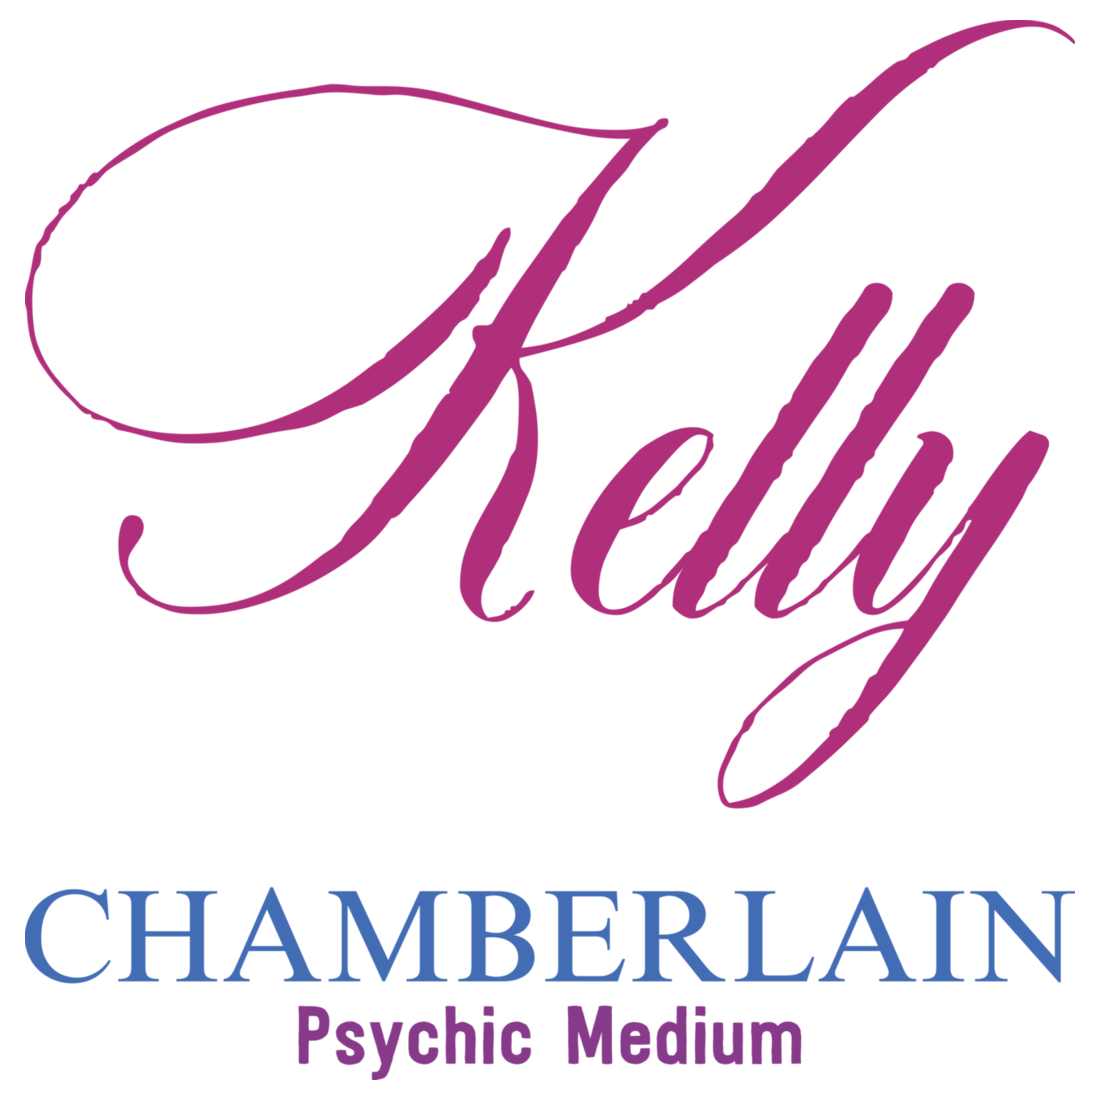 Kelly Chamberlain Psychic Medium